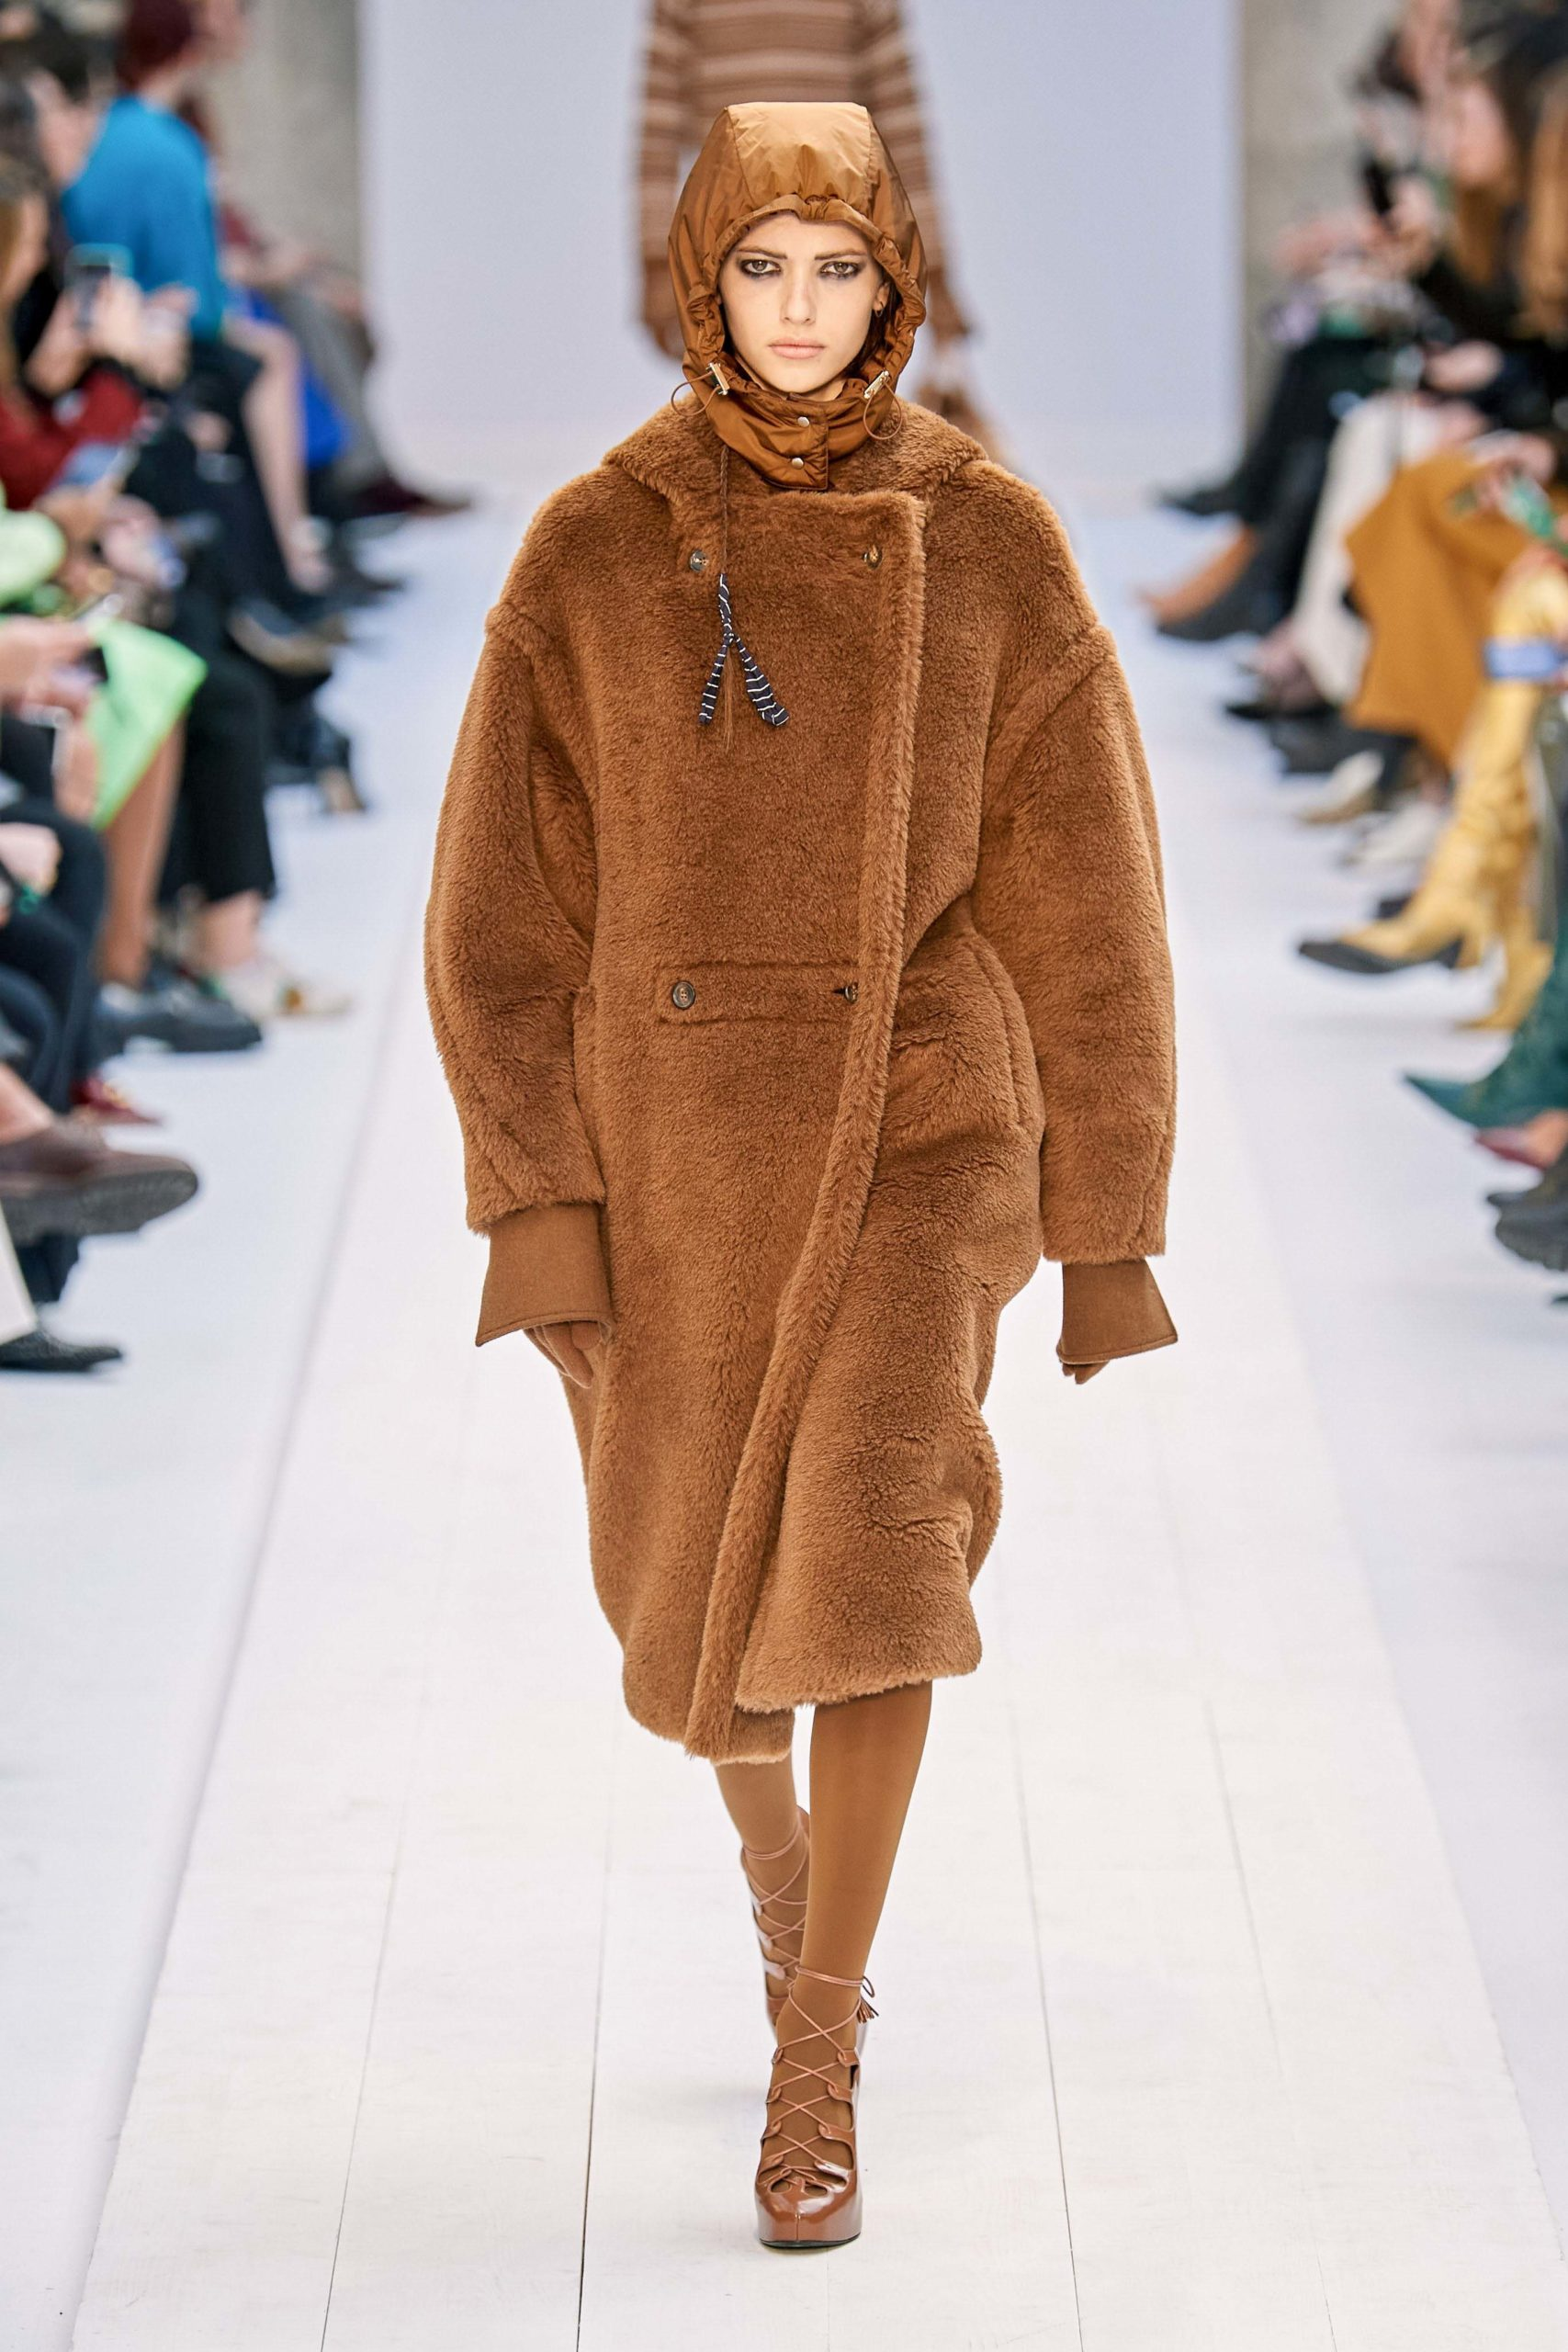 Max Mara Fall 2020 trends runway coverage Ready To Wear Vogue caramel shaggy